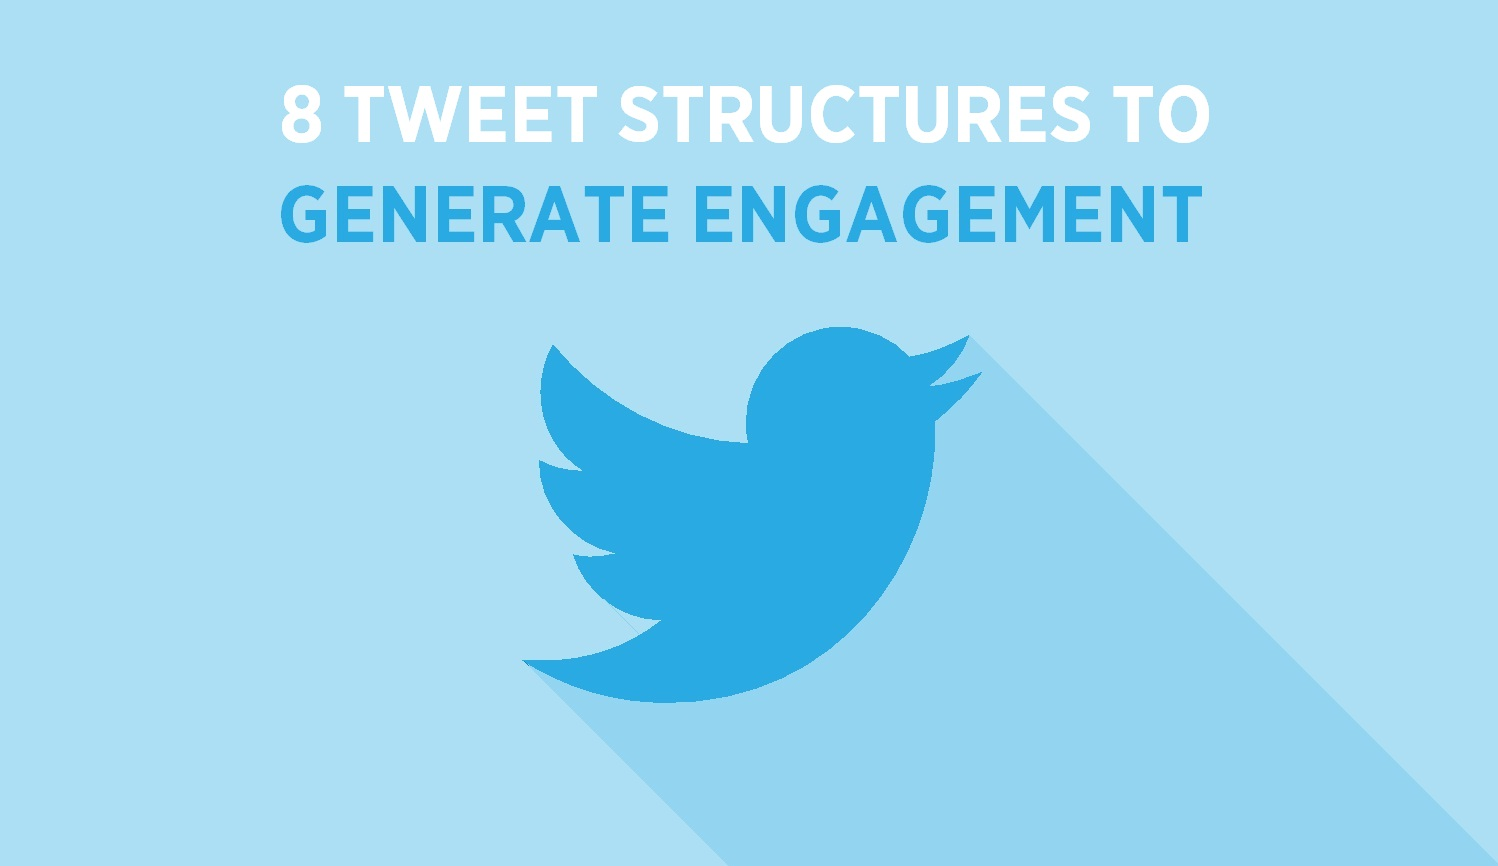 infographic 8 tweet structures to generate engagement